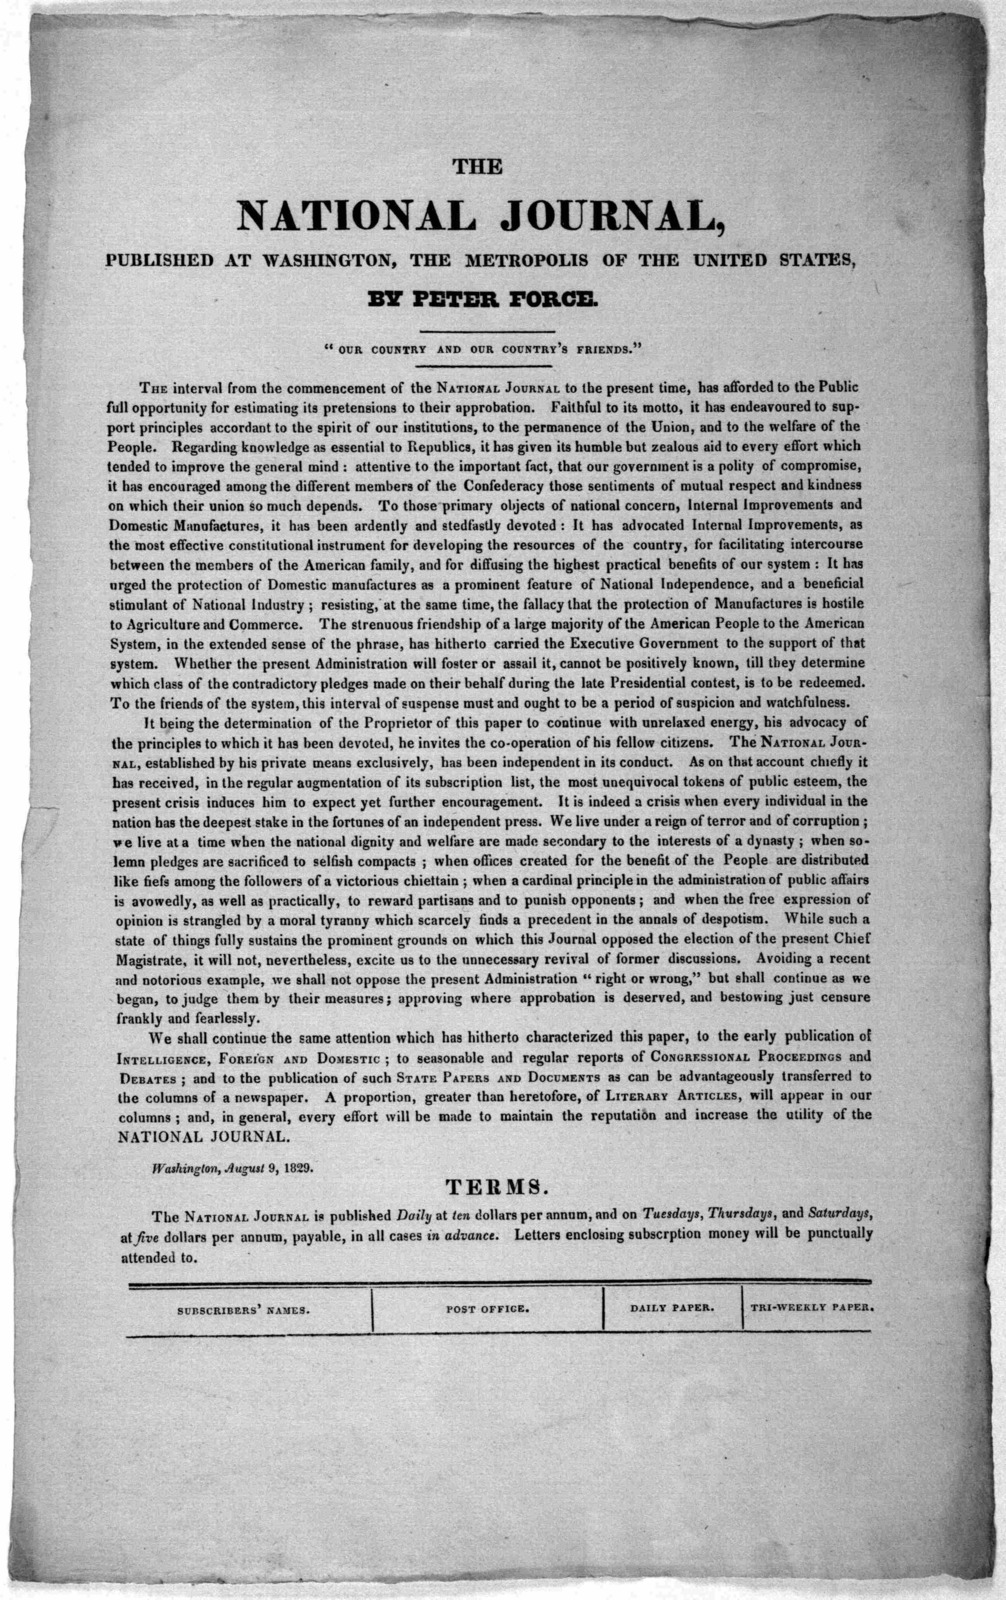 The national journal, published at Washington, the metropolis of the United States by Peter Force. The interval from the commencement of the National Journal to the present time, has afforded to the public full opportunity for estimating its pre